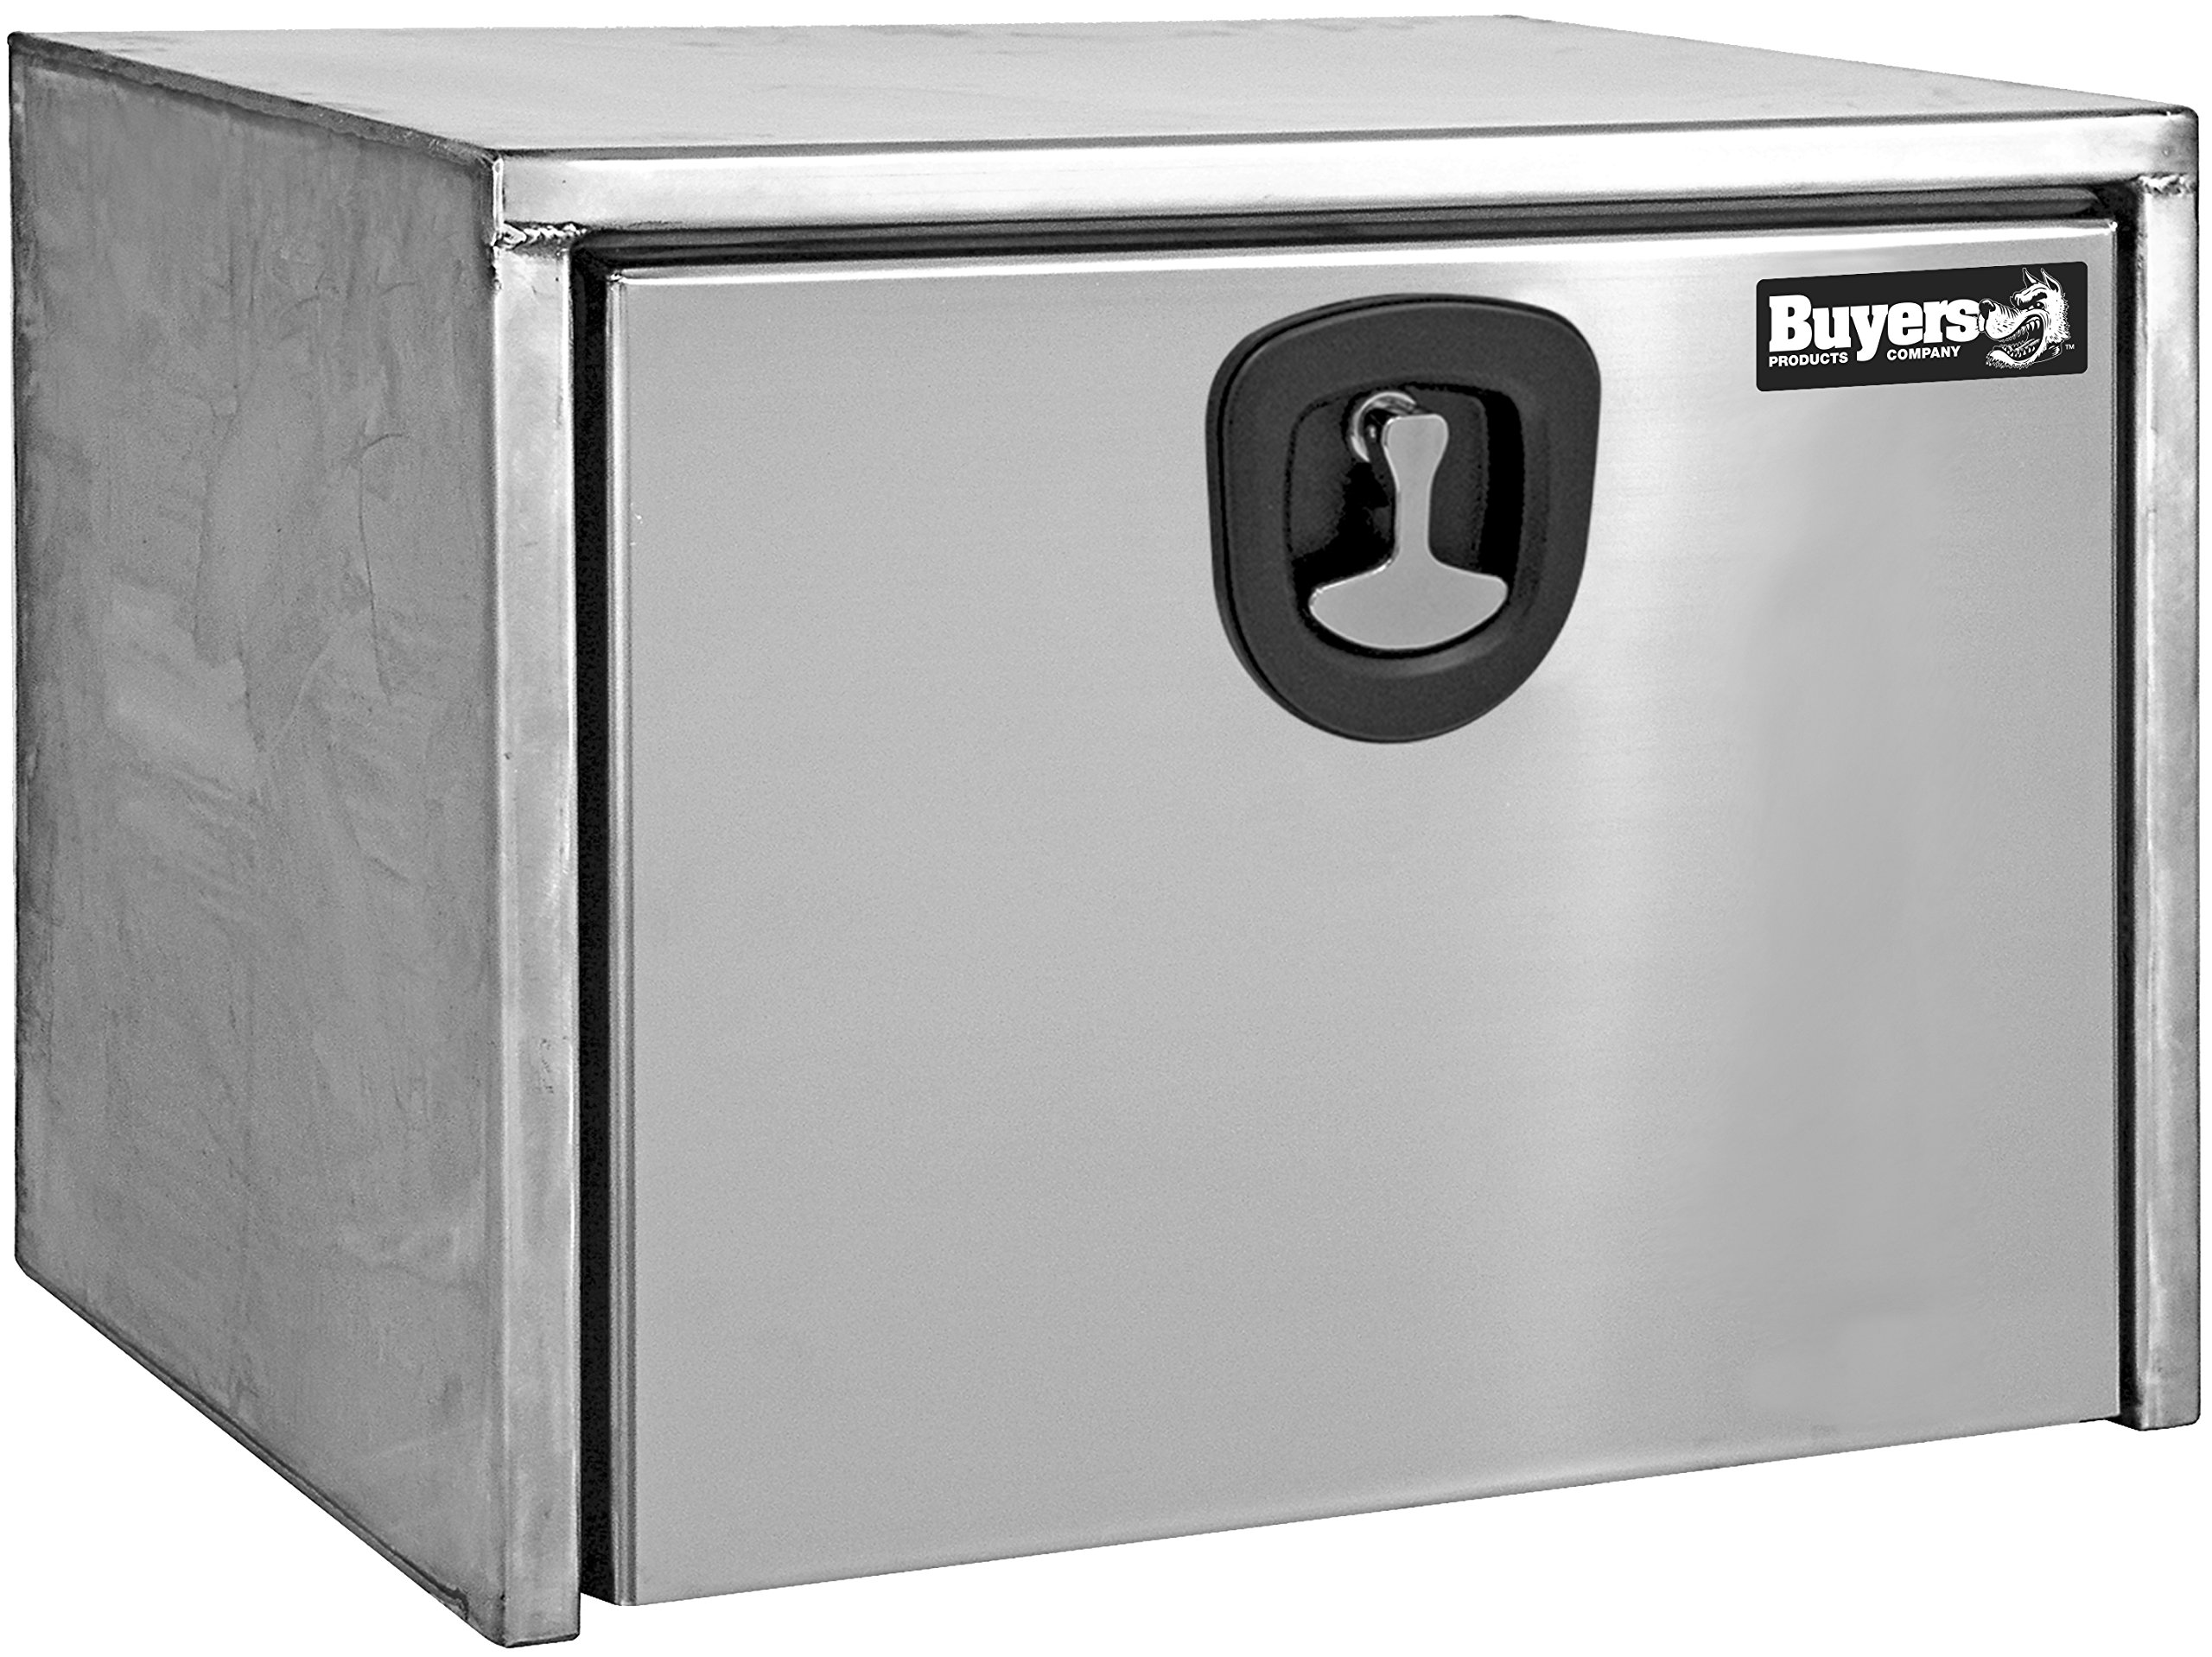 Buyers Products Stainless Steel Underbody Truck Box w/Polished Stainless Steel Door (18x18x18 Inch) by Buyers Products